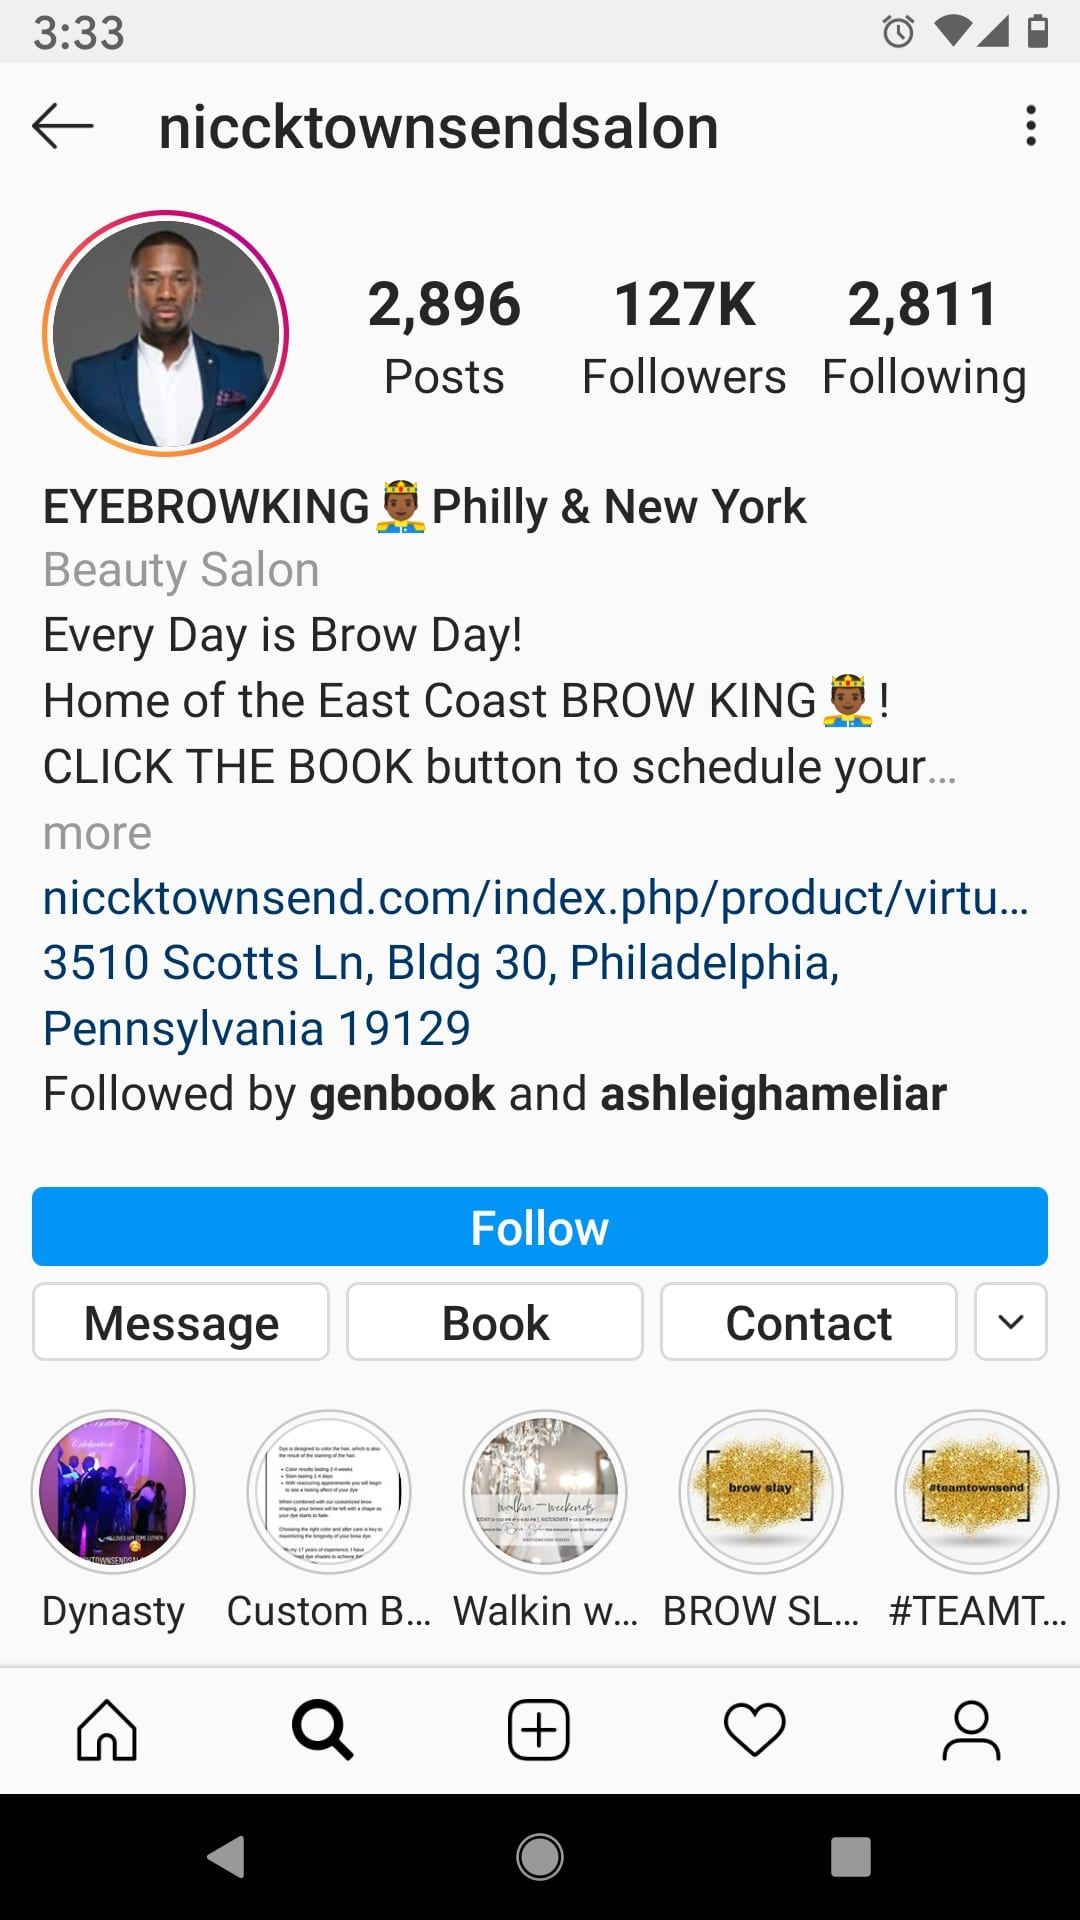 Online Appointment Bookings: Instagram book now button